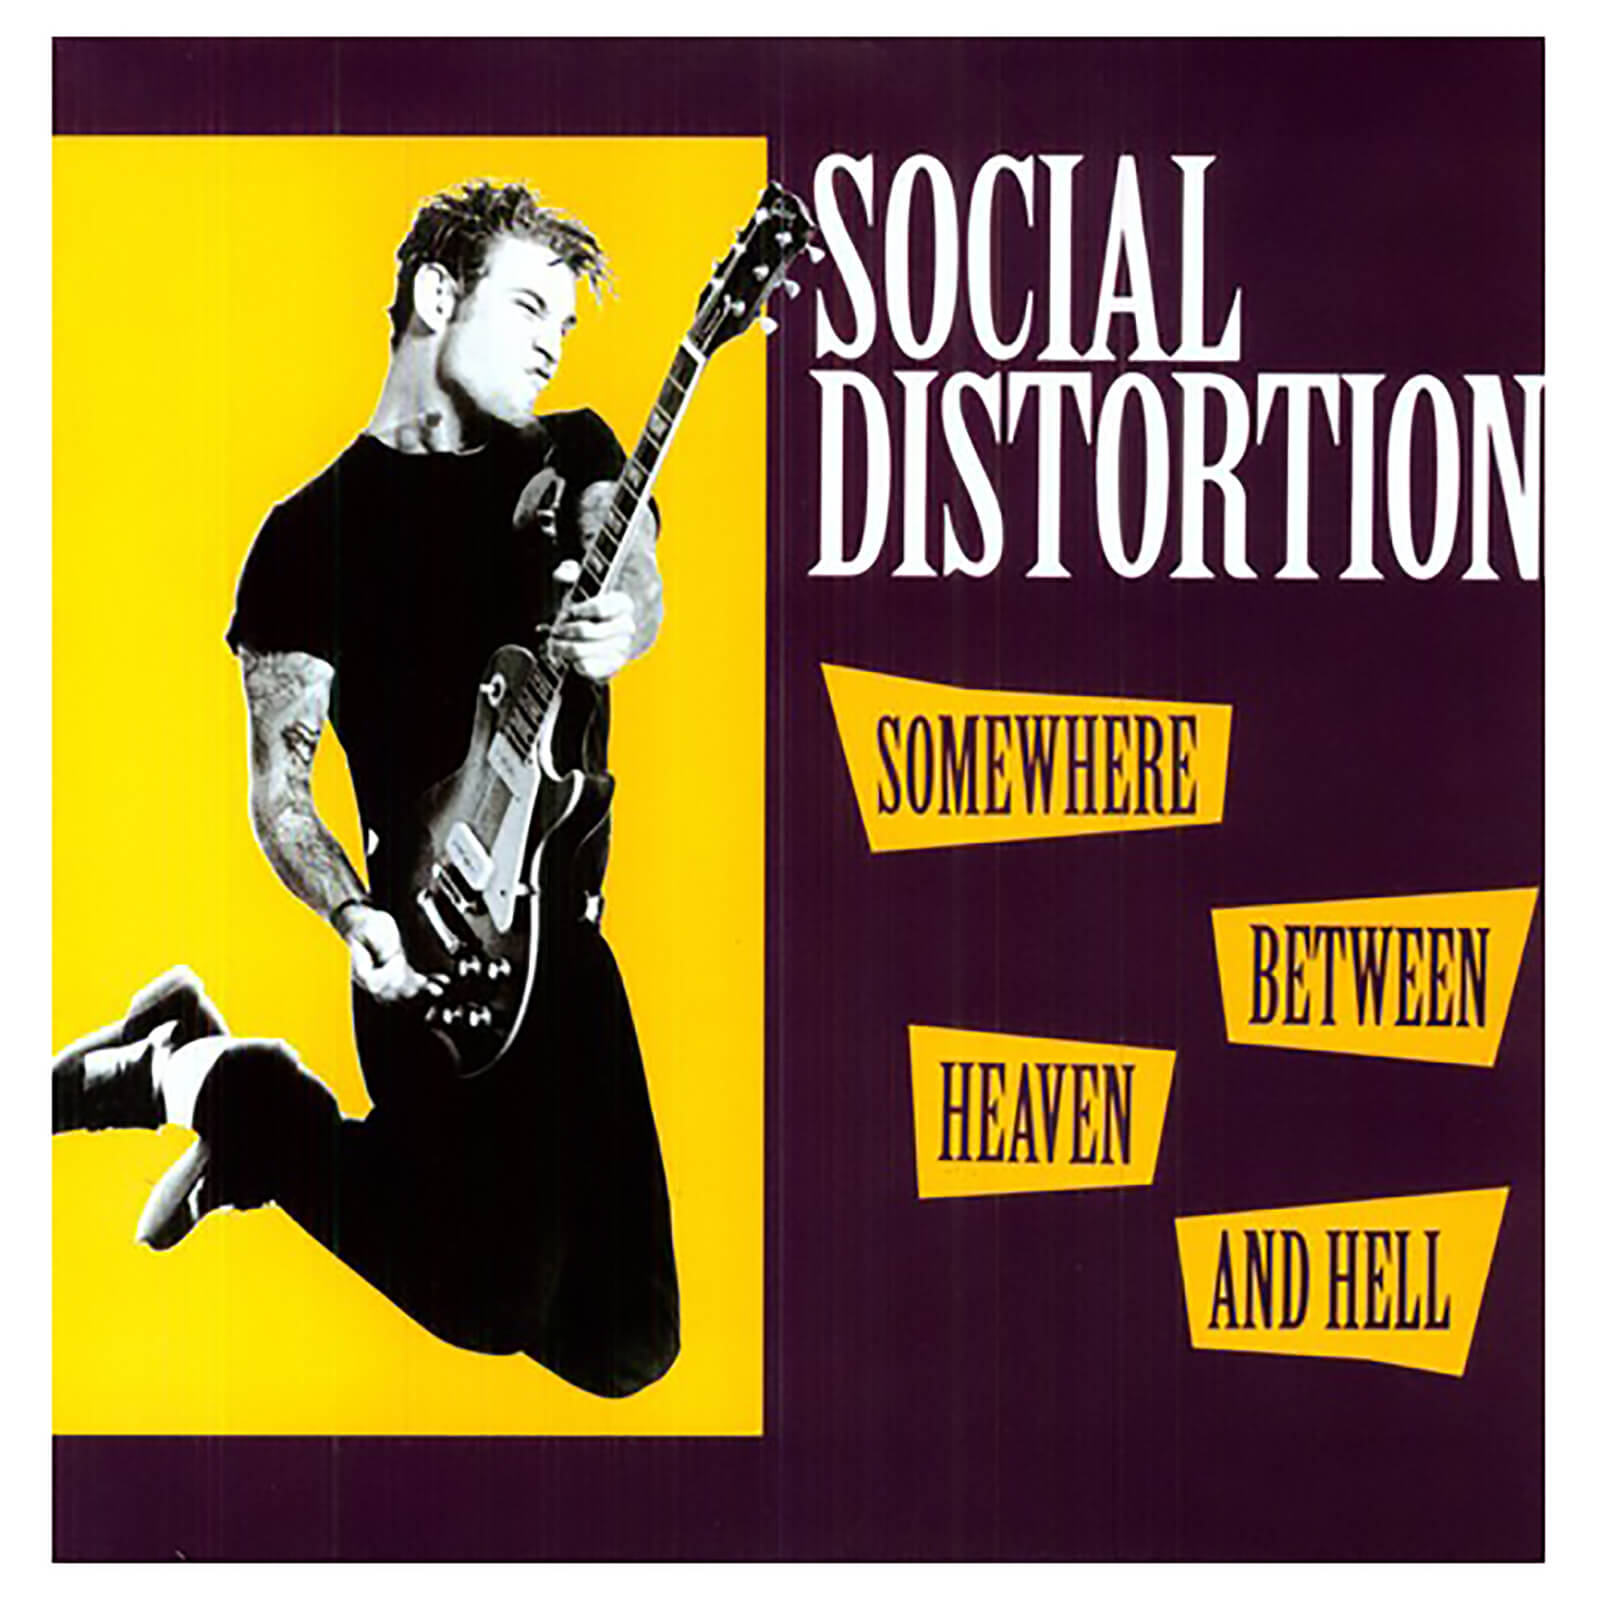 Social Distortion - Somewhere Between Heaven And Hell - Vinyl